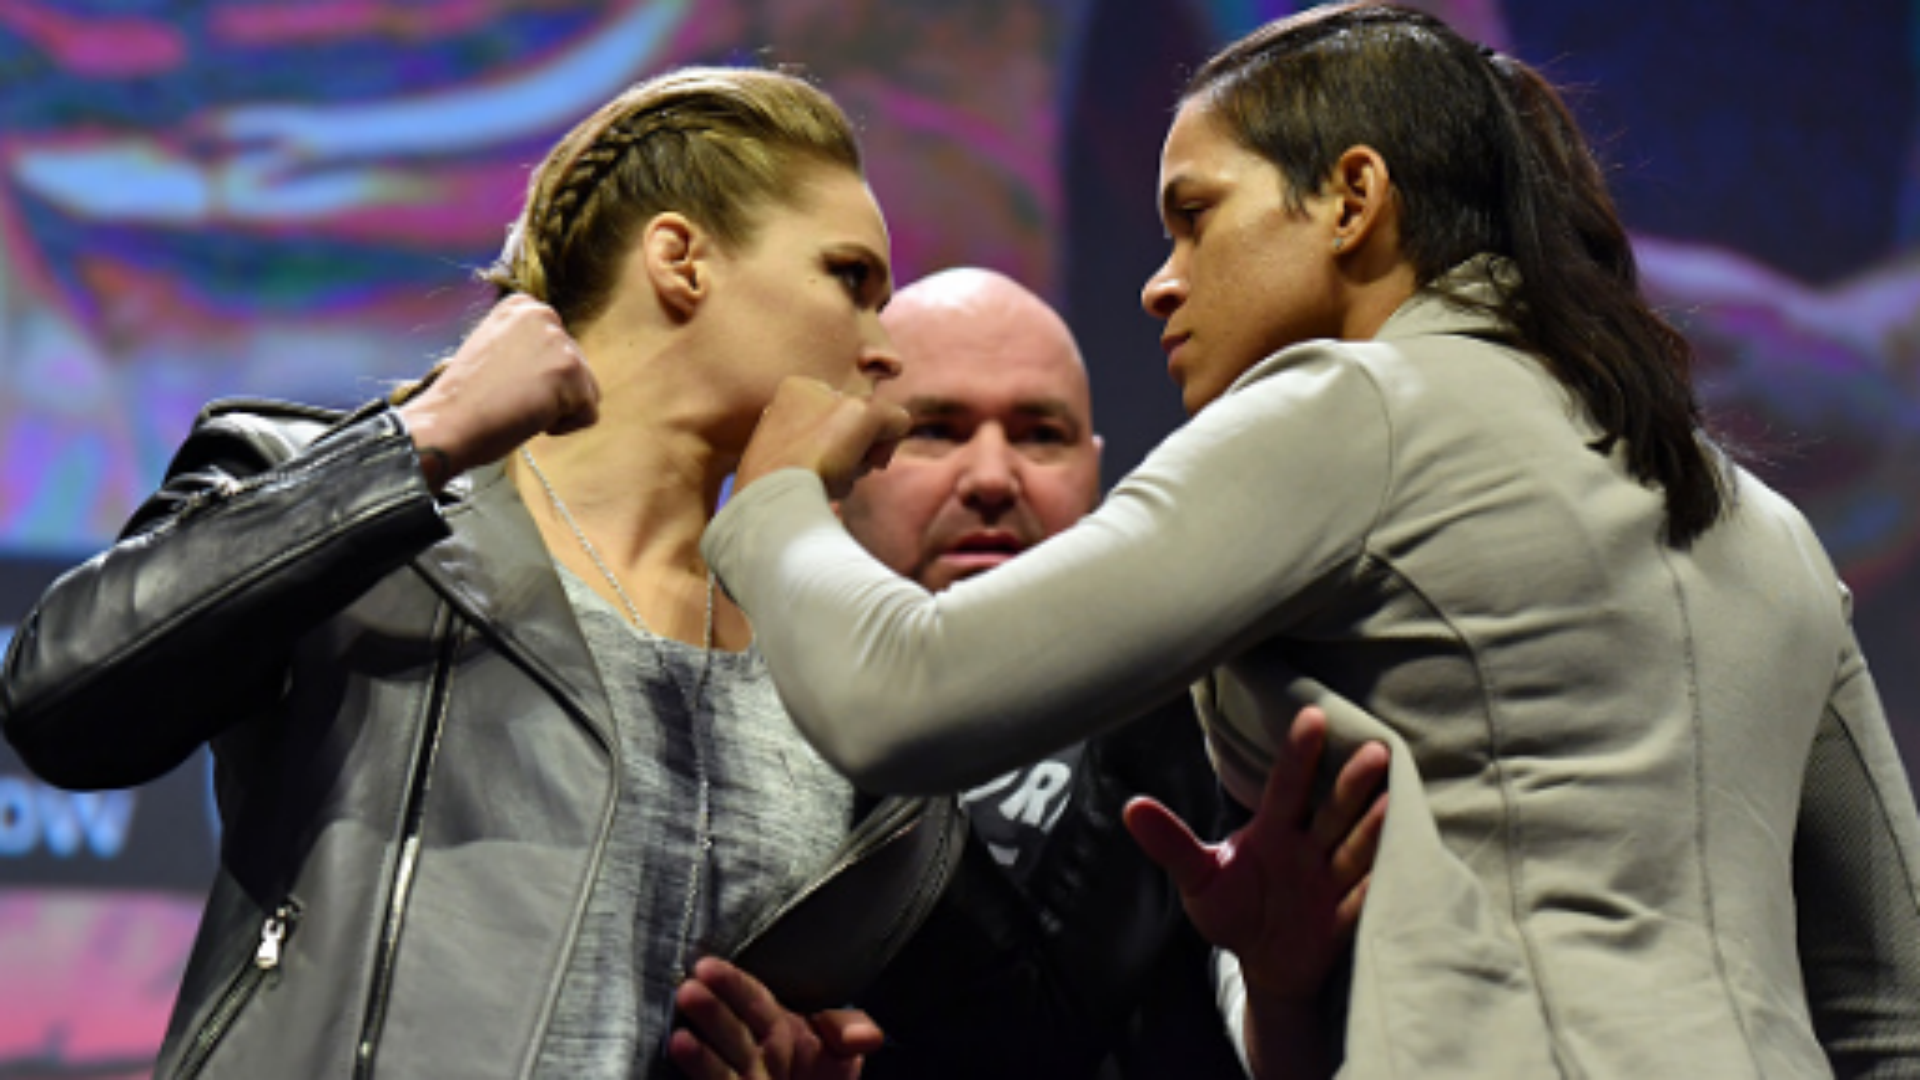 Ronda Rousey health fears: Ex reveals concerns ahead of Amanda Nunes fight